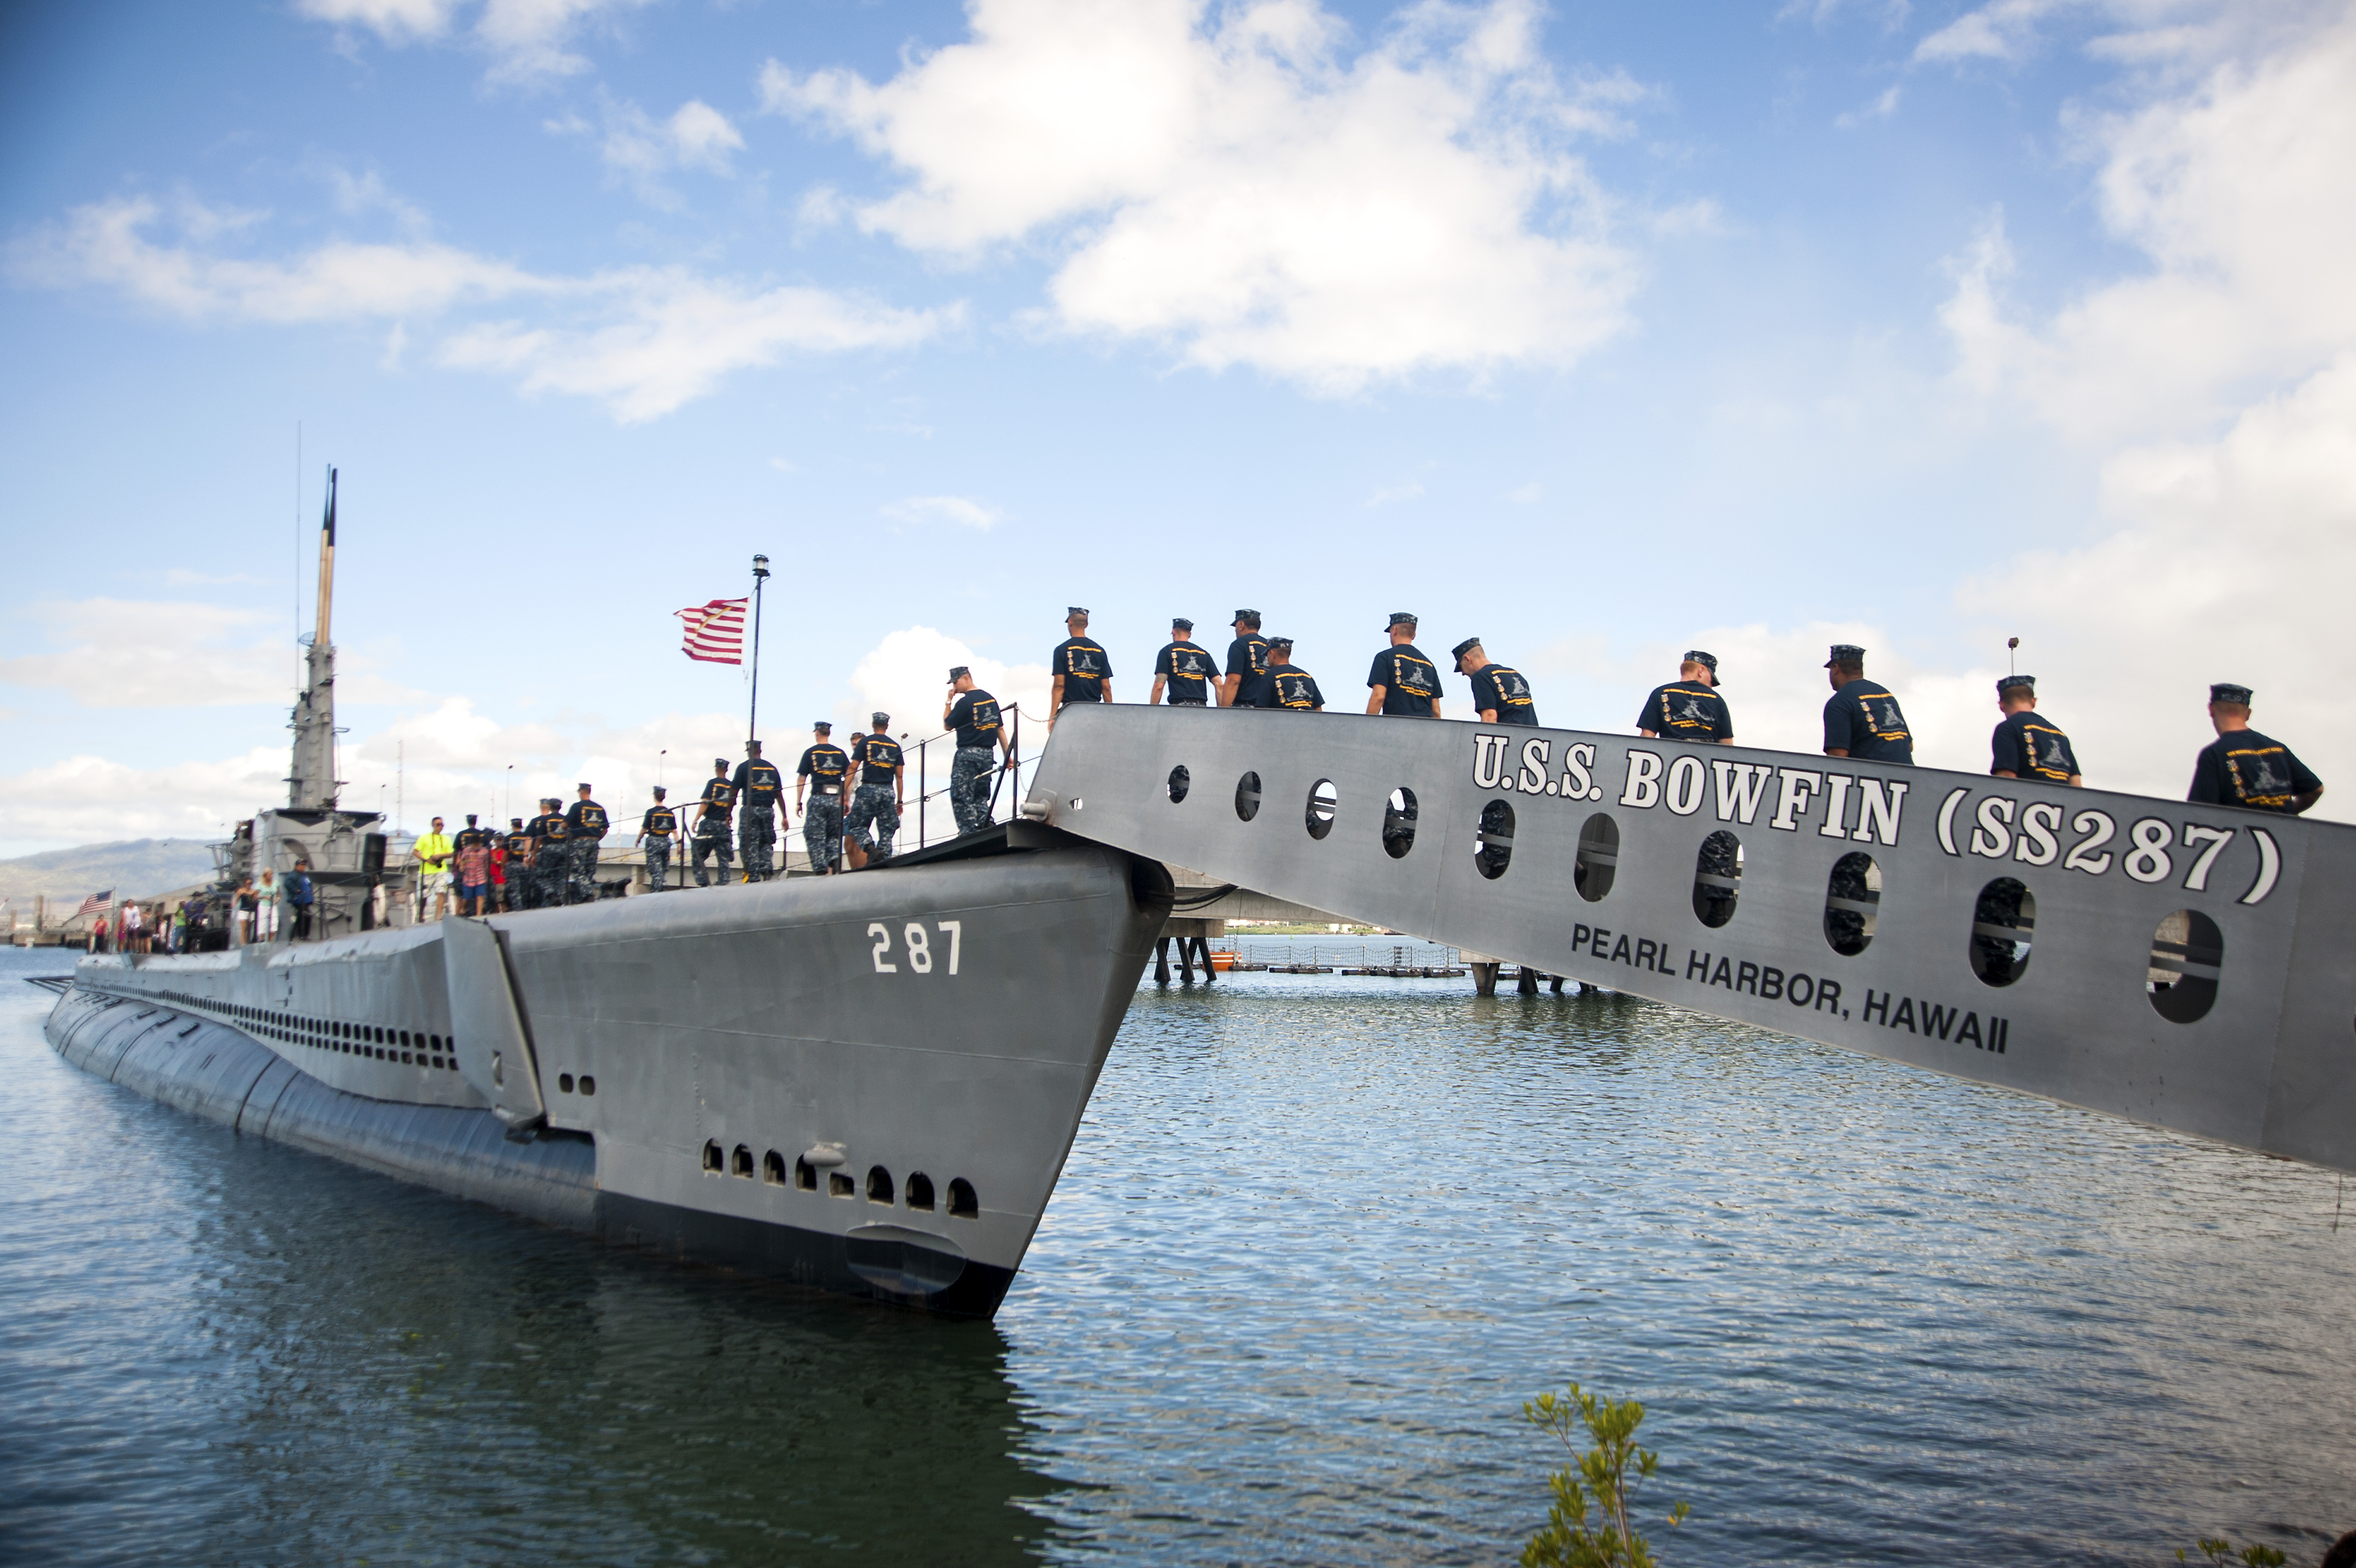 uss bowfin a gray ww2 ship docked at pearl harbor, with a line of sailors walking on deck